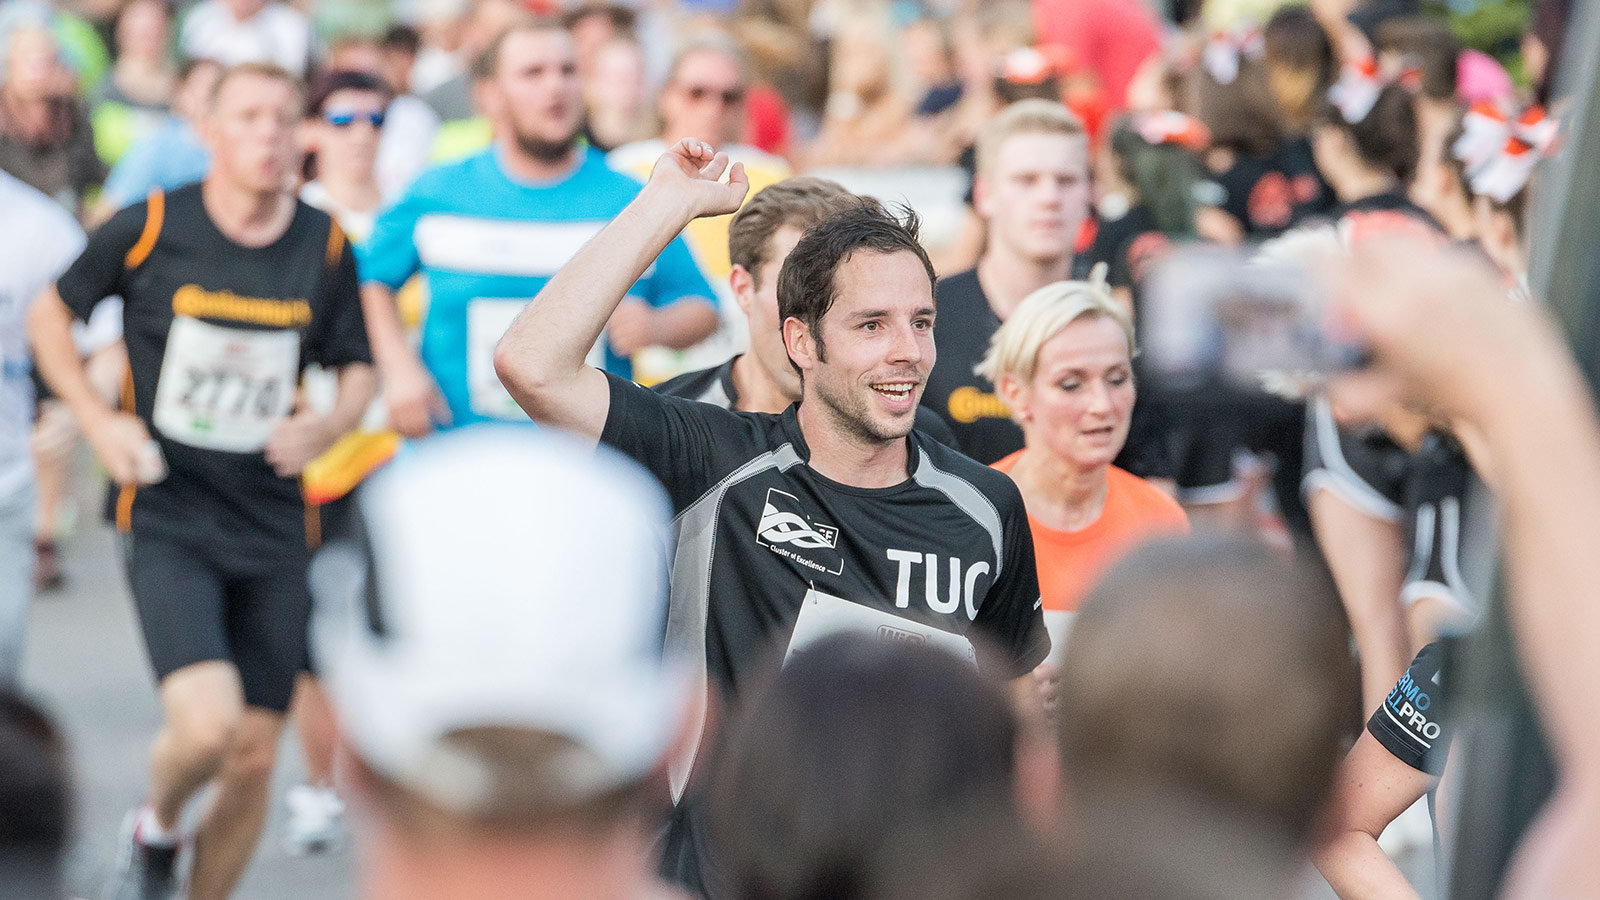 Runner with a shirt of Chemnitz University of Technology